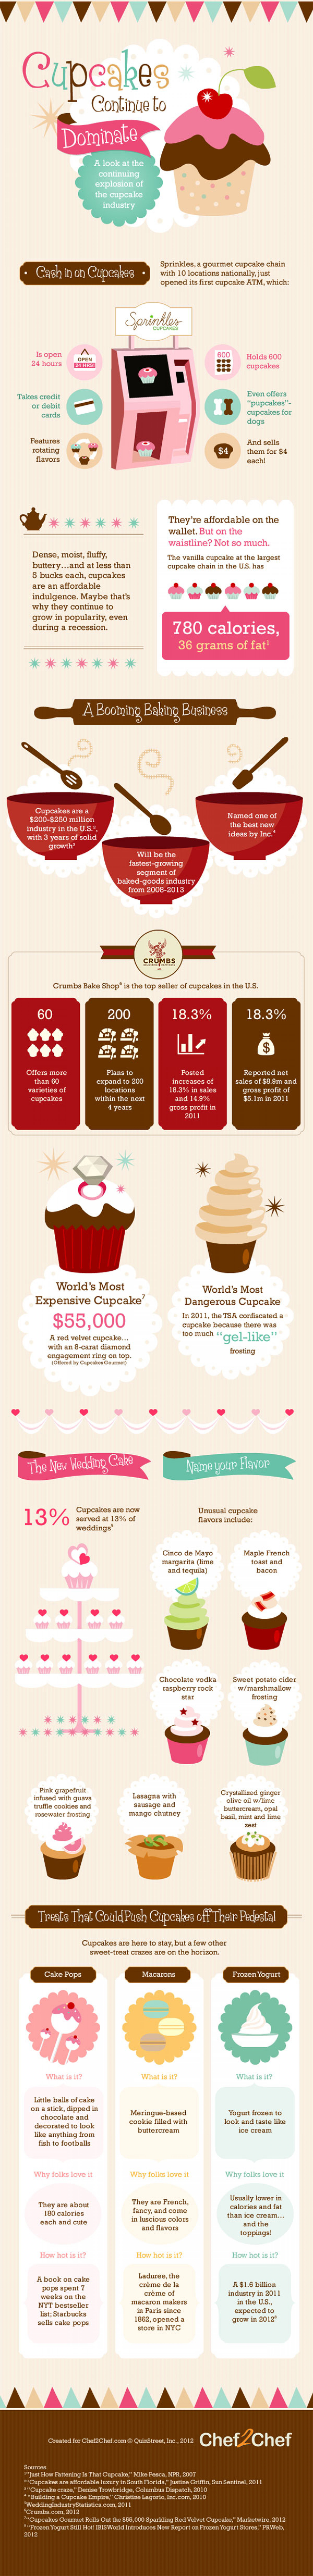 Cupcakes Continue To Dominate Infographic